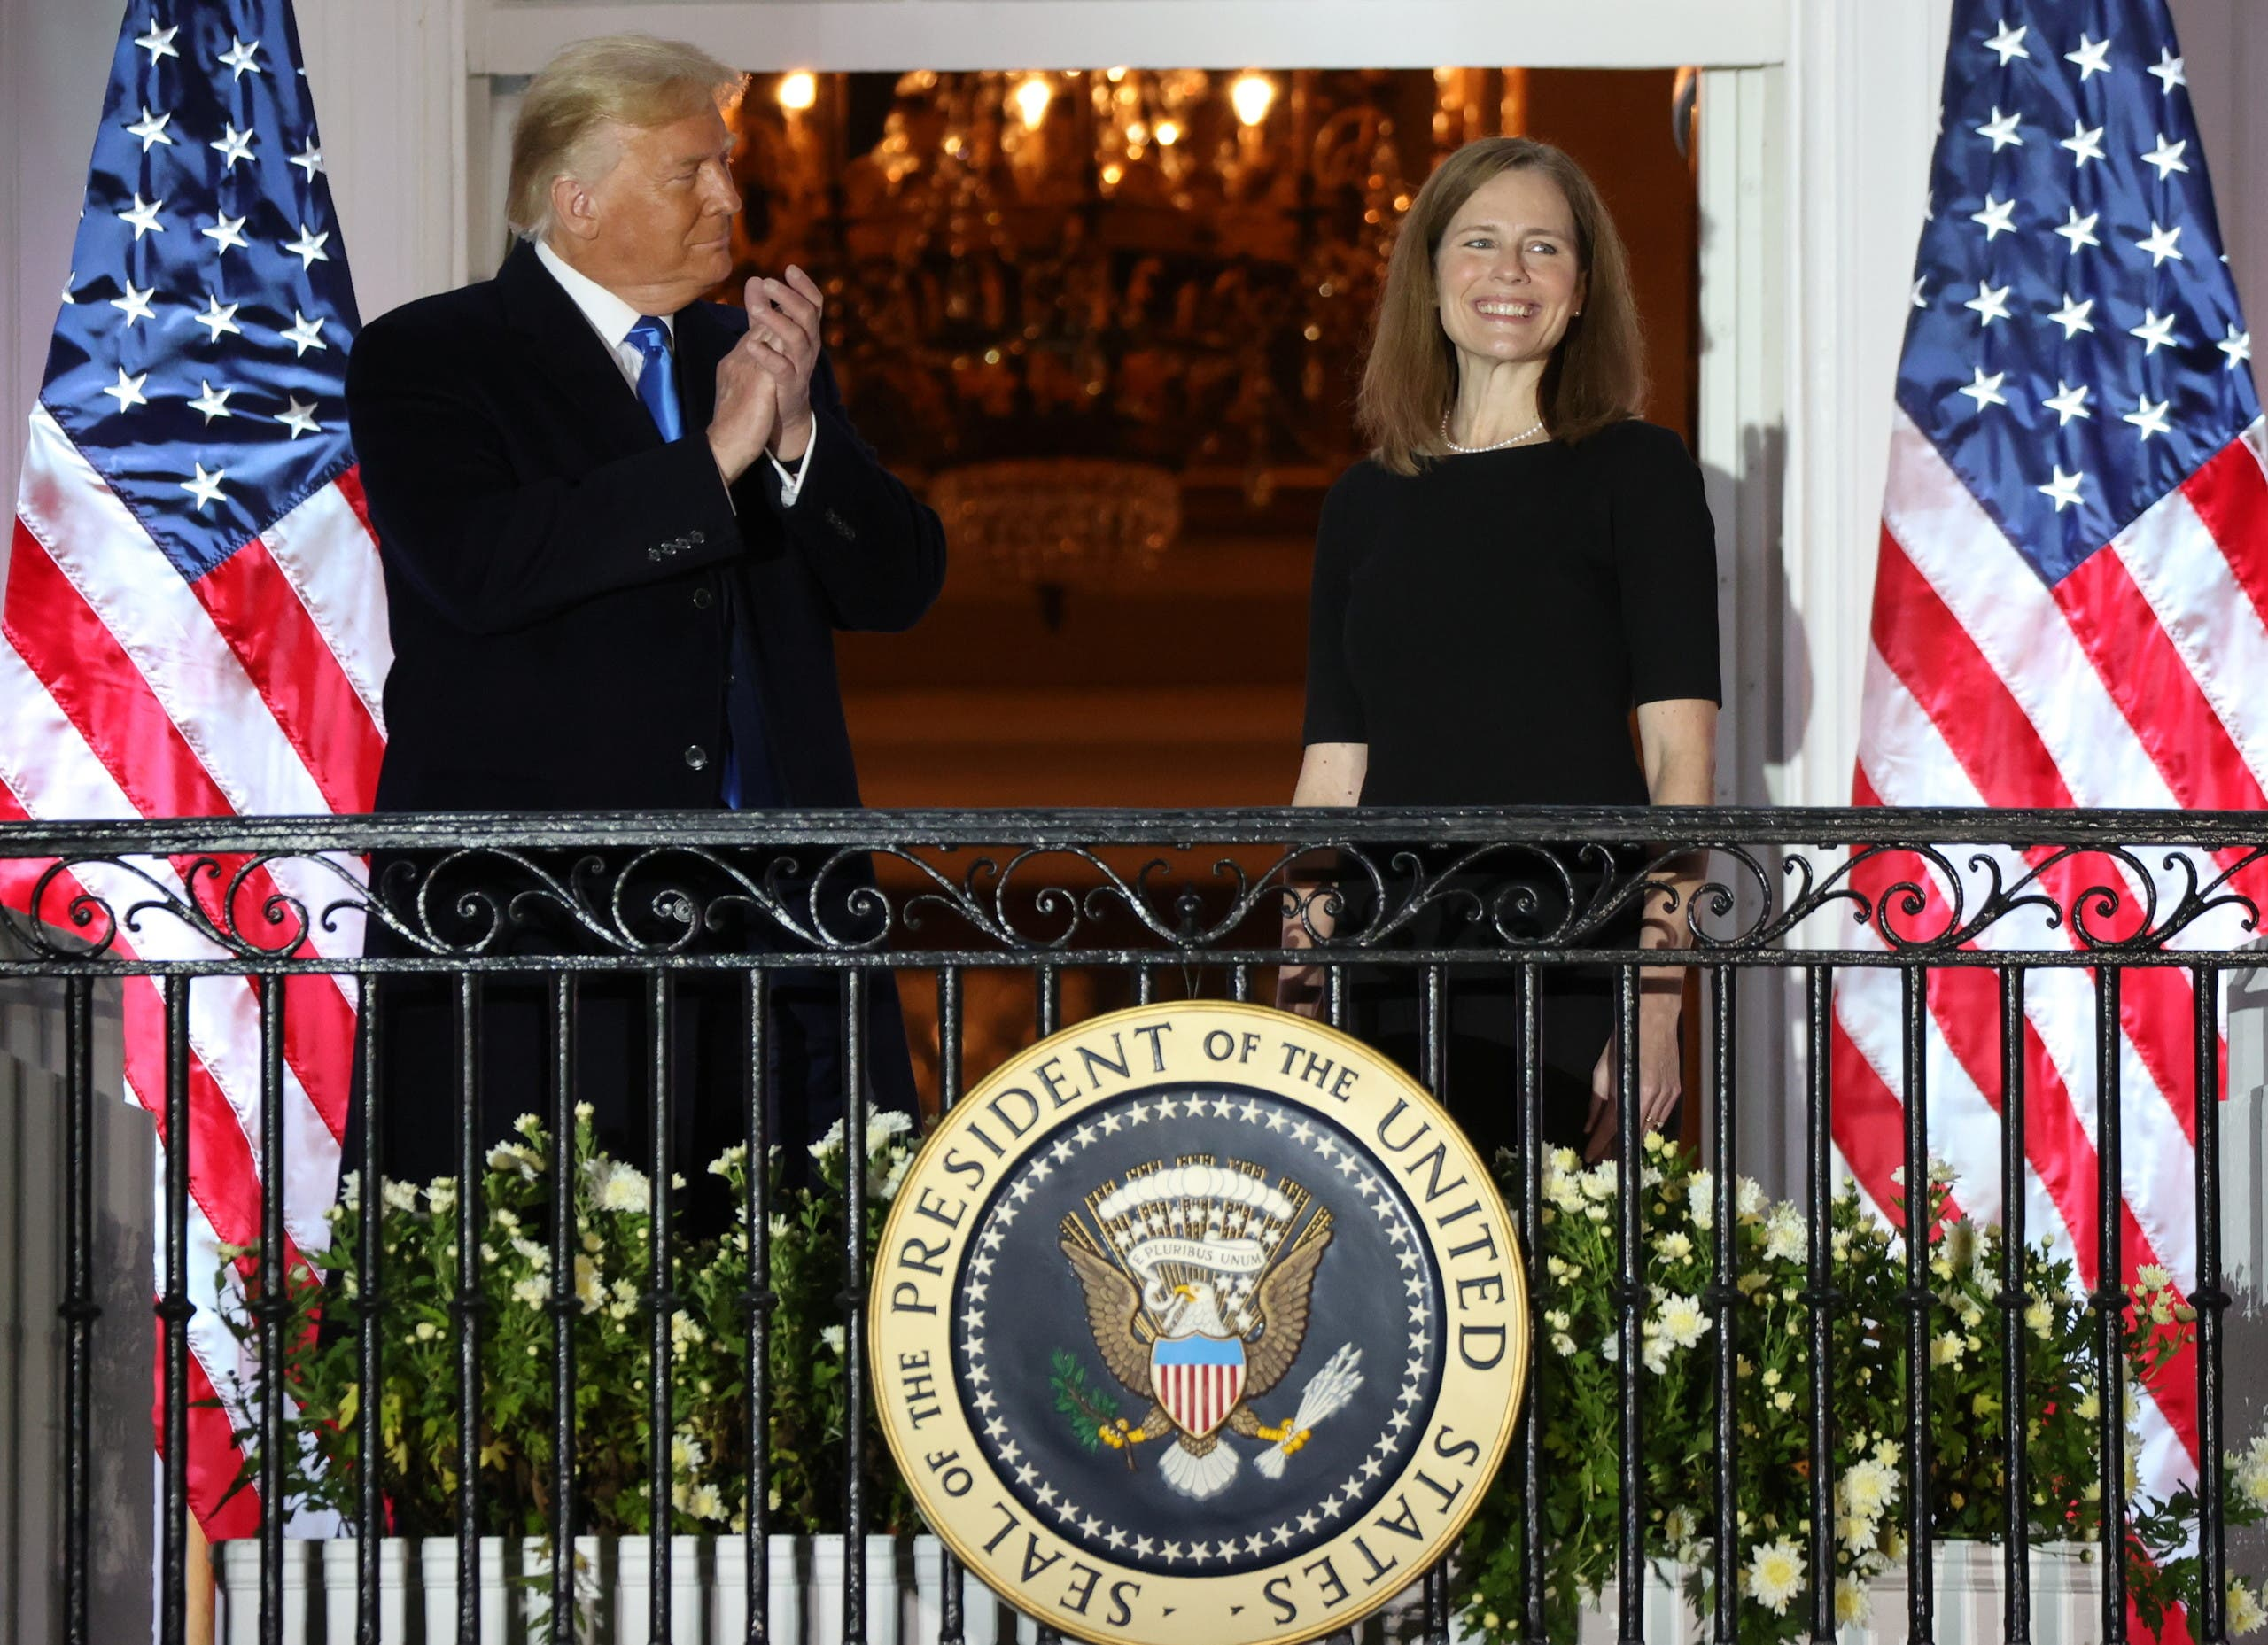 US President Donald Trump applauds US Supreme Court Associate Justice Amy Coney Barrett after she took her oath of office and was sworn in to serve on the court on the South Lawn of the White House in Washington. (Reuters)